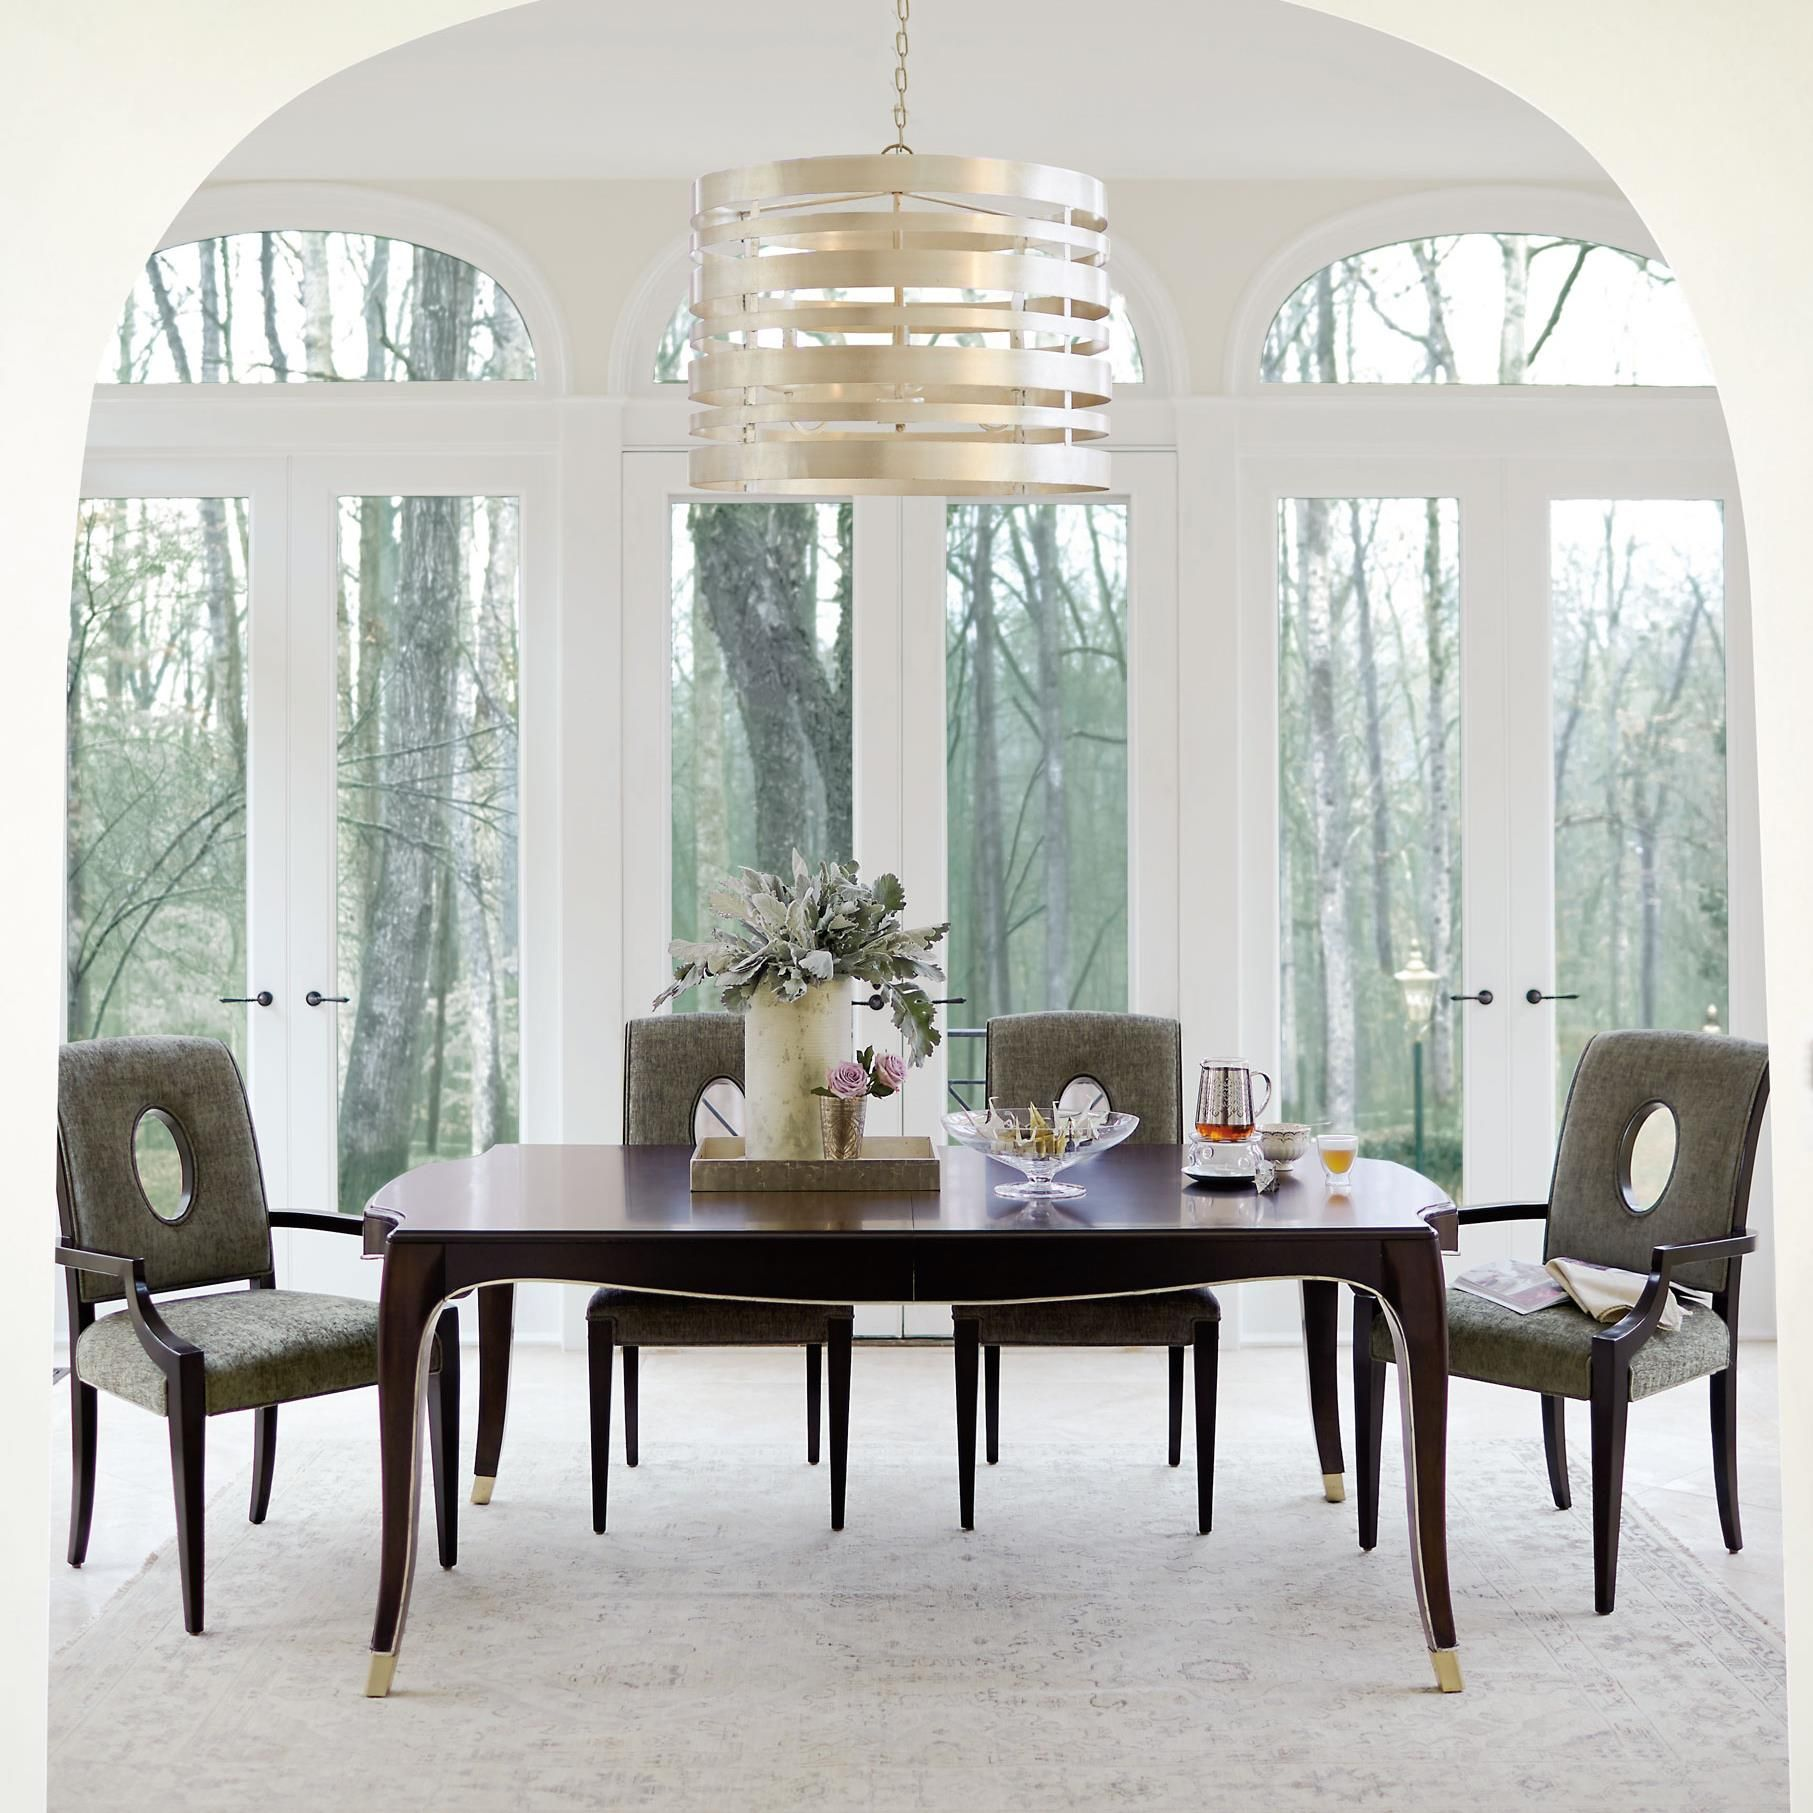 Miramont 5 Piece Dining Table and Chair Set by Bernhardt | Dining ...